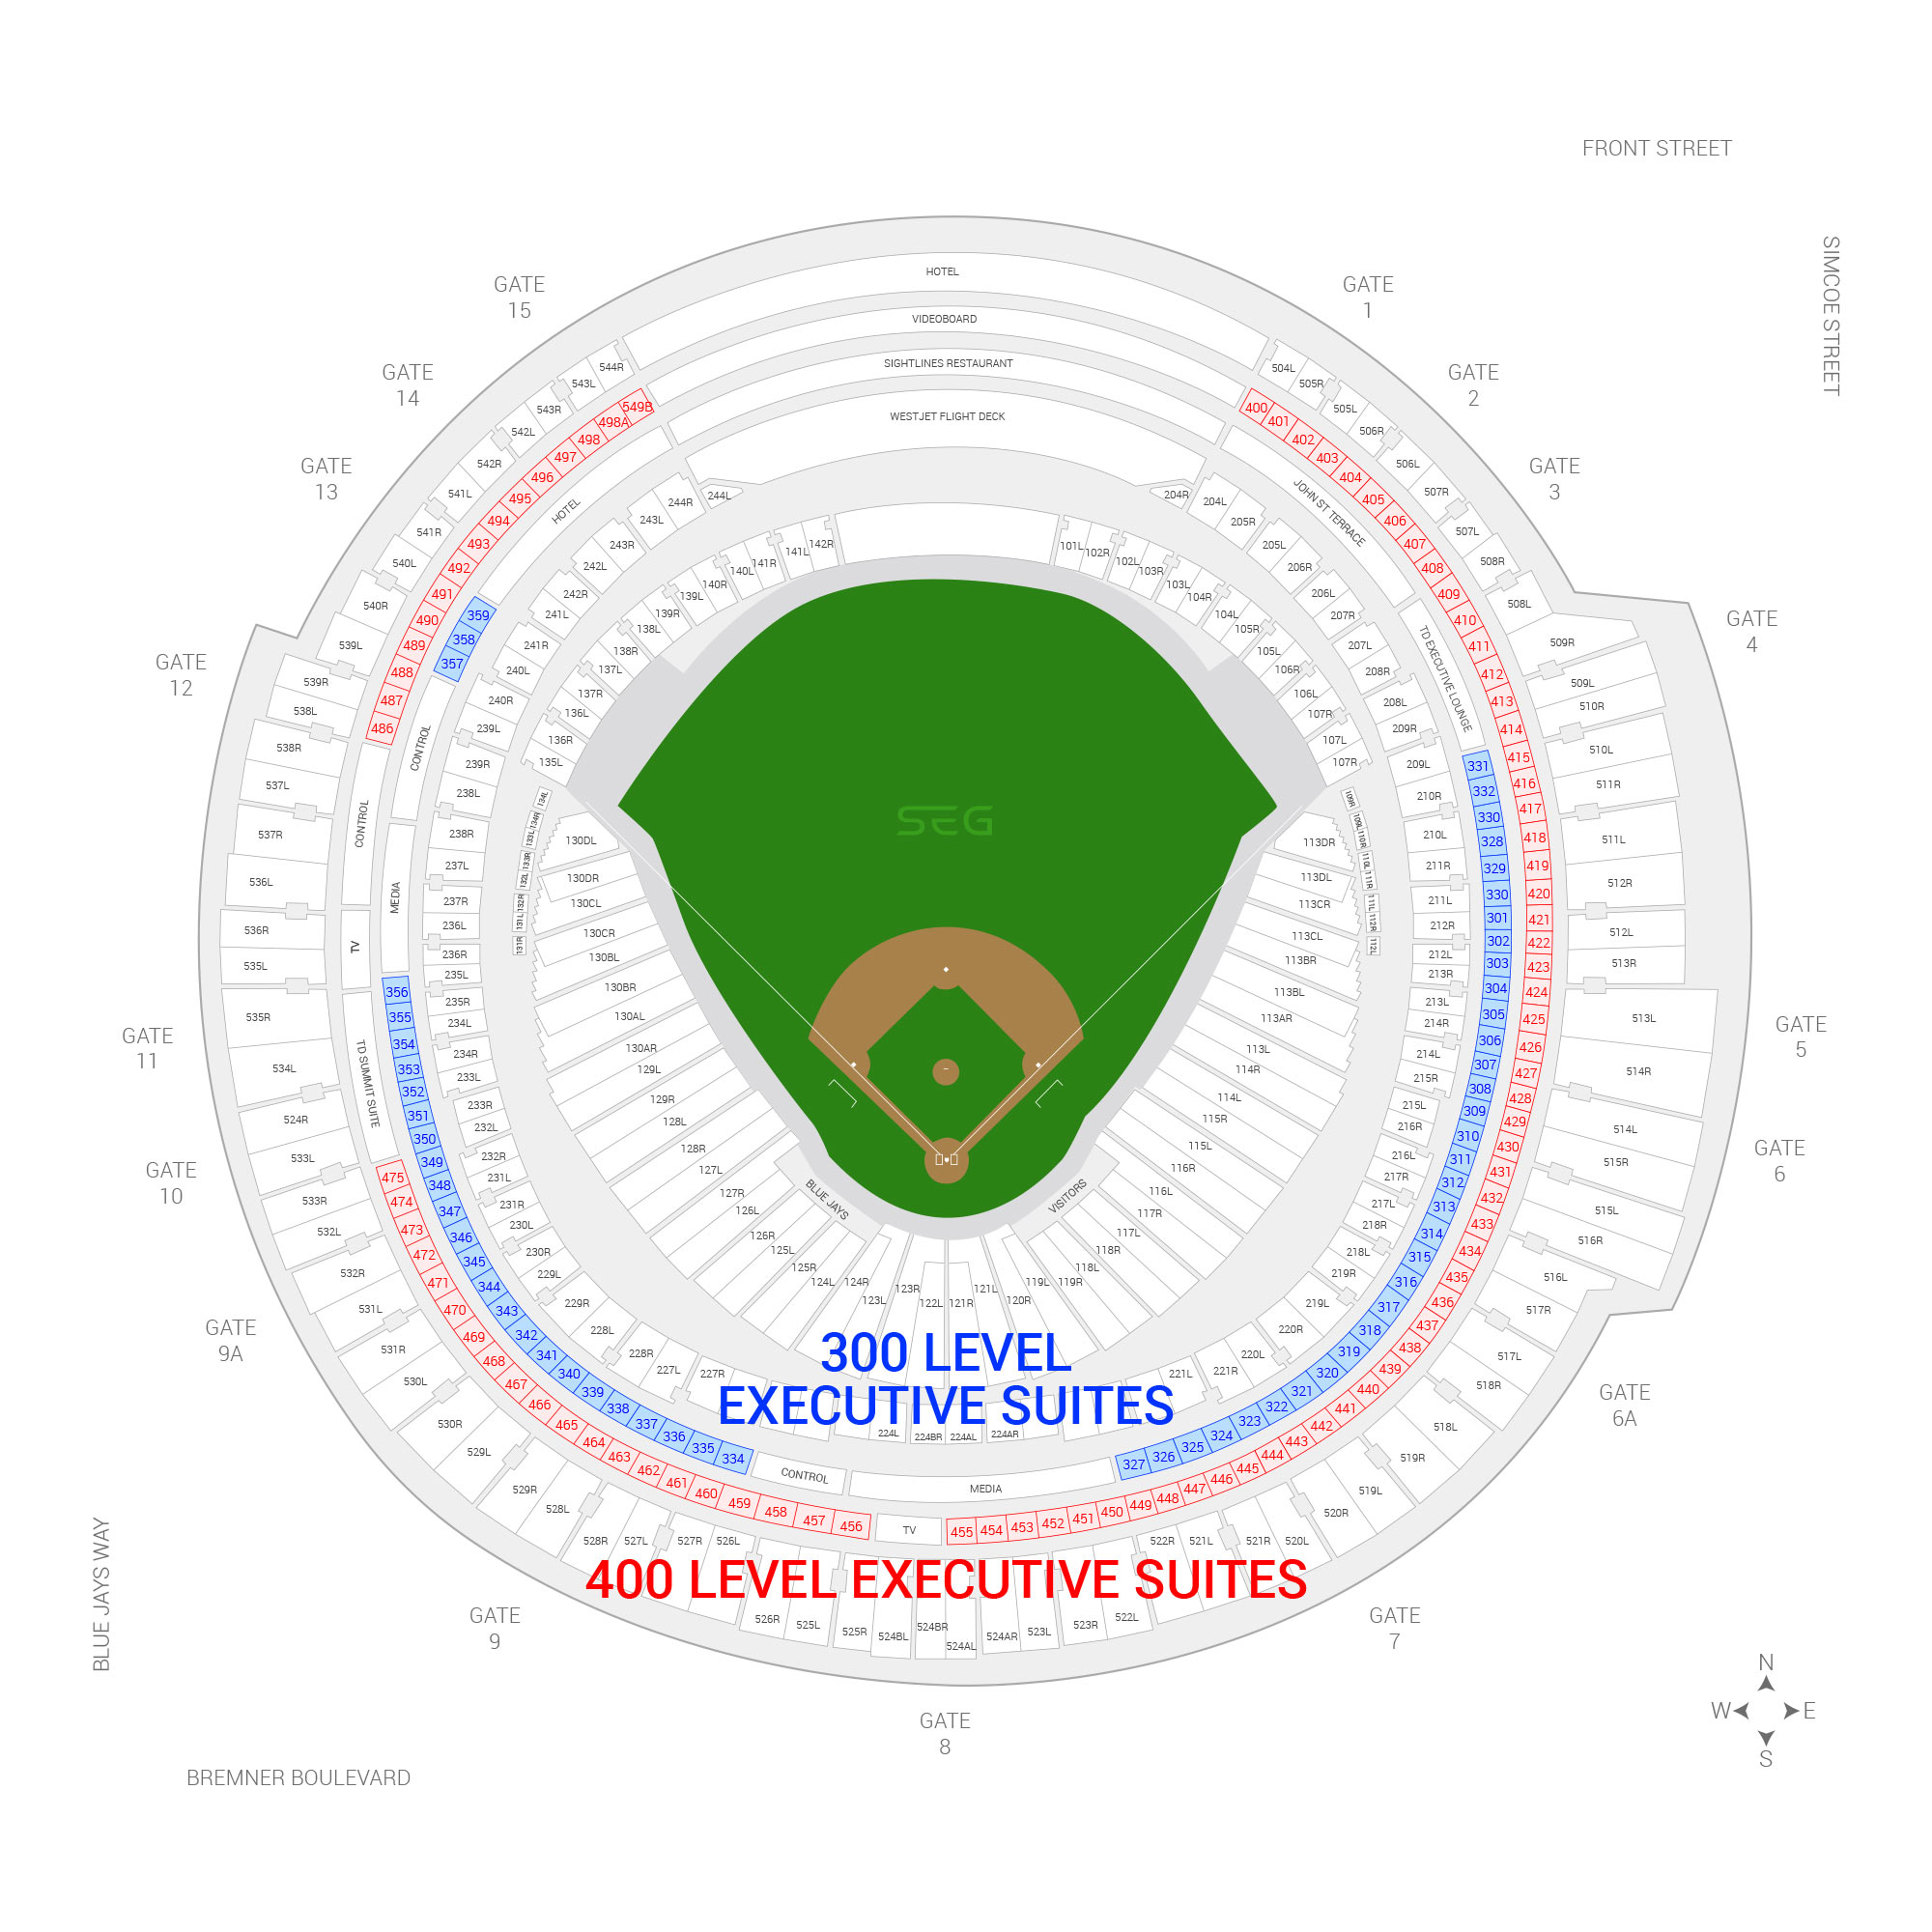 Rogers Centre / Toronto Blue Jays Suite Map and Seating Chart